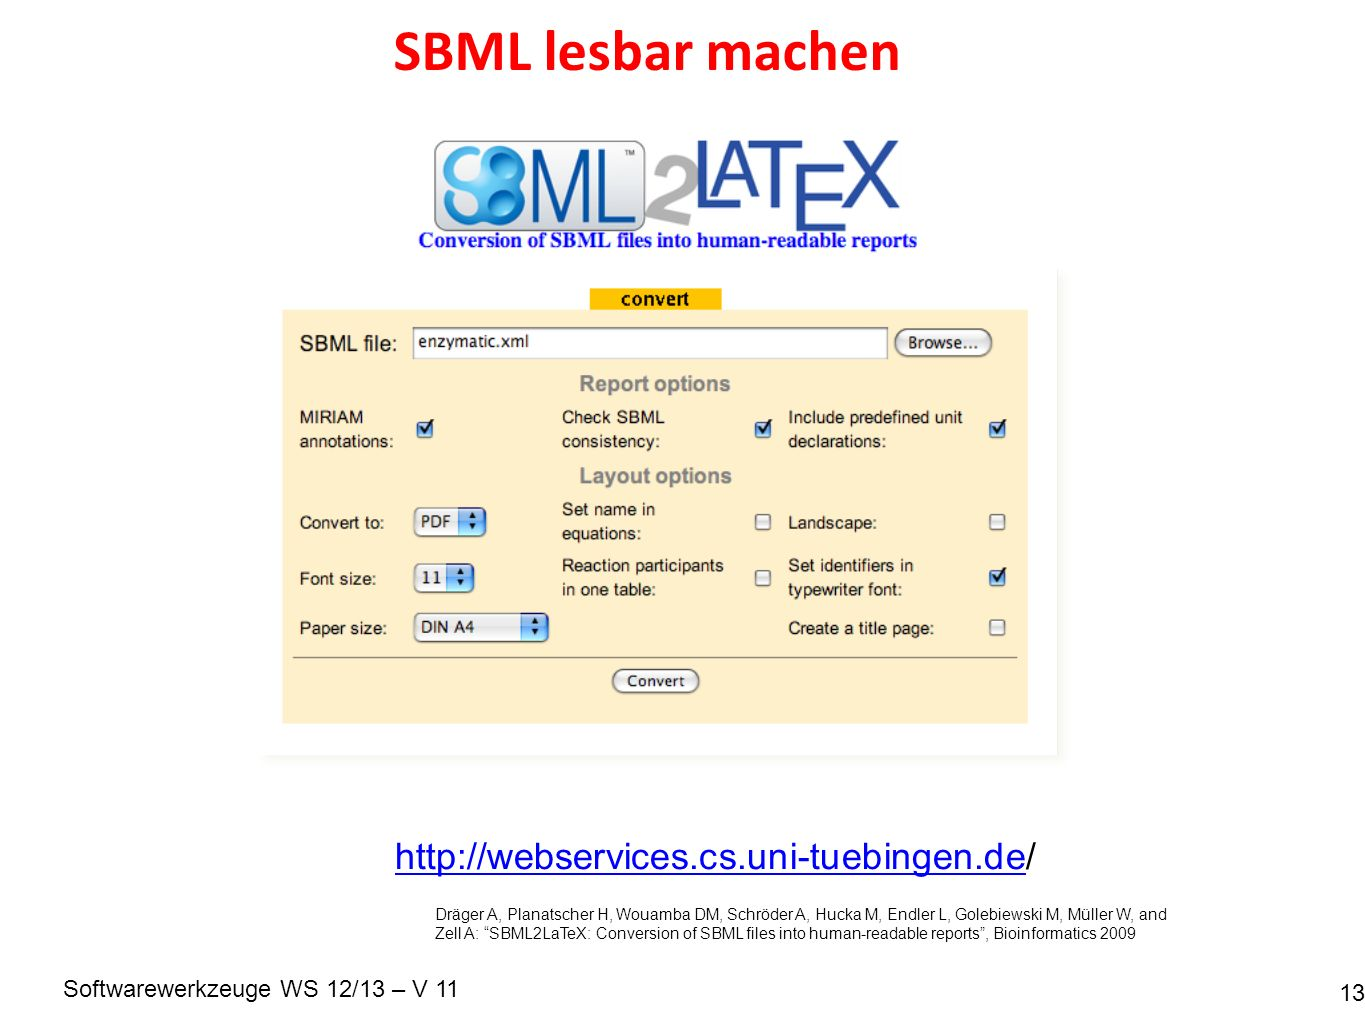 Softwarewerkzeuge WS 12/13 – V 11 SBML lesbar machen 13   Dräger A, Planatscher H, Wouamba DM, Schröder A, Hucka M, Endler L, Golebiewski M, Müller W, and Zell A: SBML2LaTeX: Conversion of SBML files into human-readable reports, Bioinformatics 2009